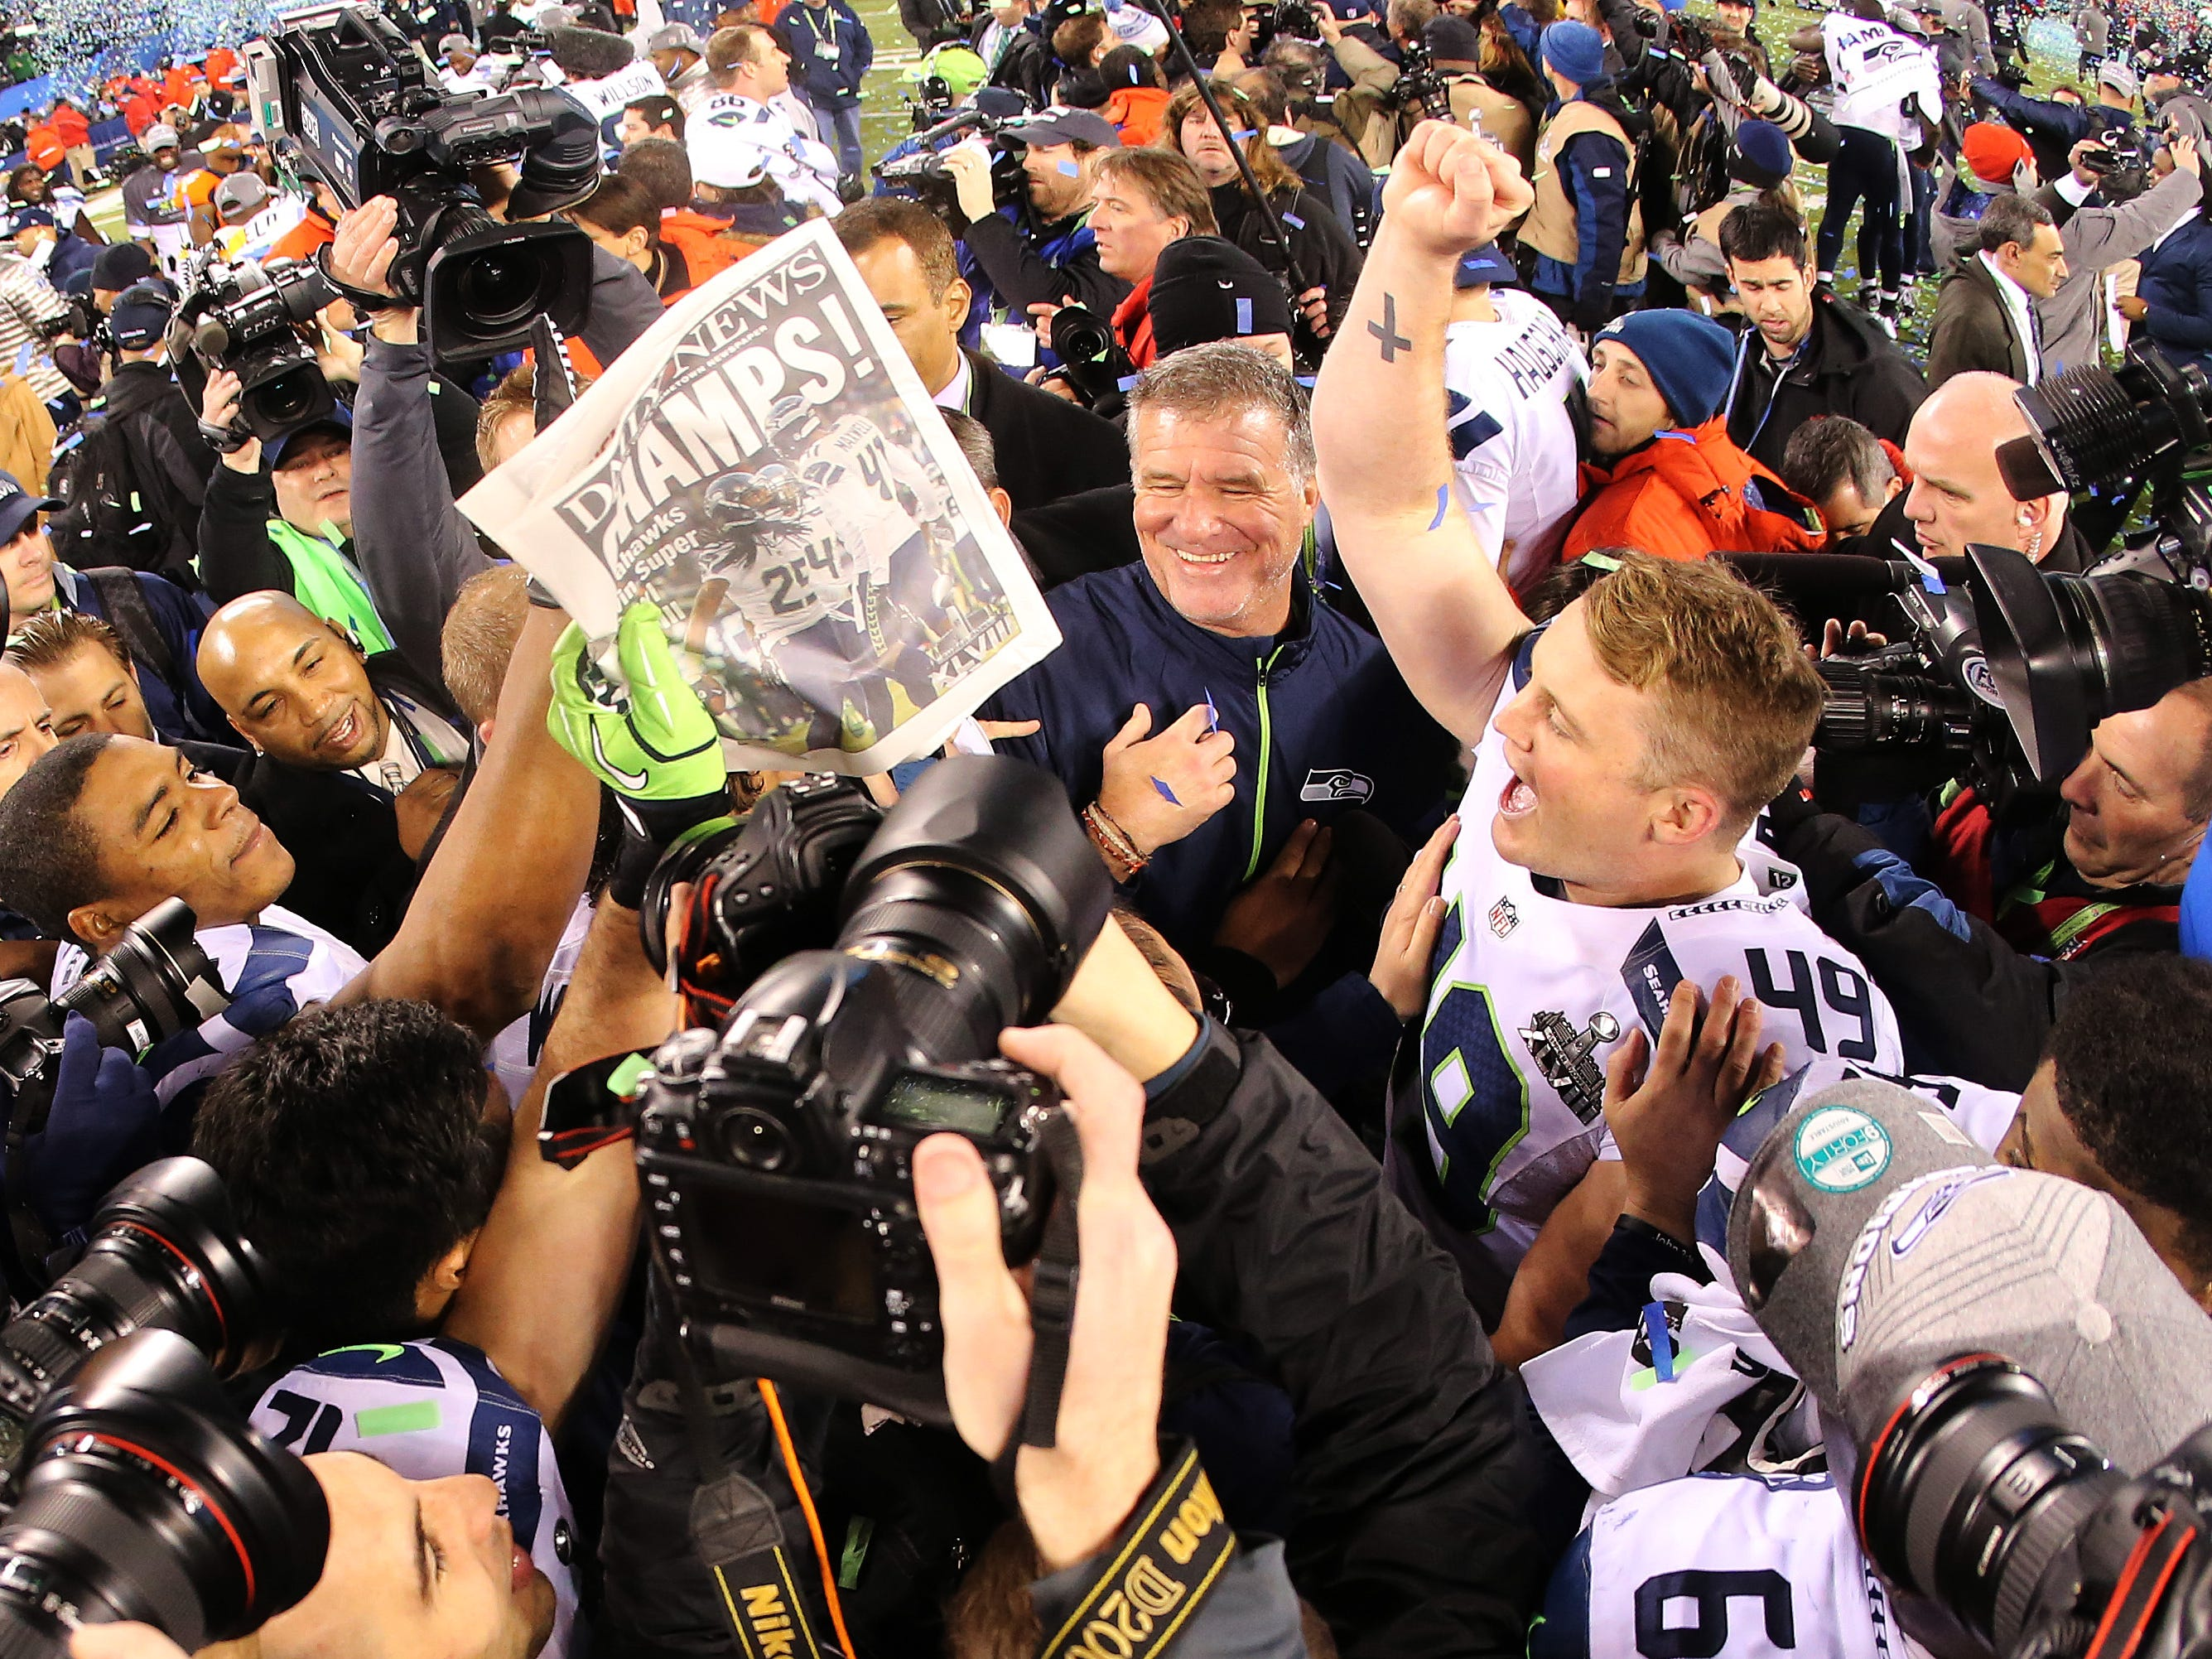 Long snapper Clint Gresham #49 of the Seattle Seahawks  celebrates with teammates on the field after winning Super Bowl XLVIII at MetLife Stadium on February 2, 2014 in East Rutherford, New Jersey. The Seahawks beat the Broncos 43-8.   (Photo by Jamie Squire/Getty Images)